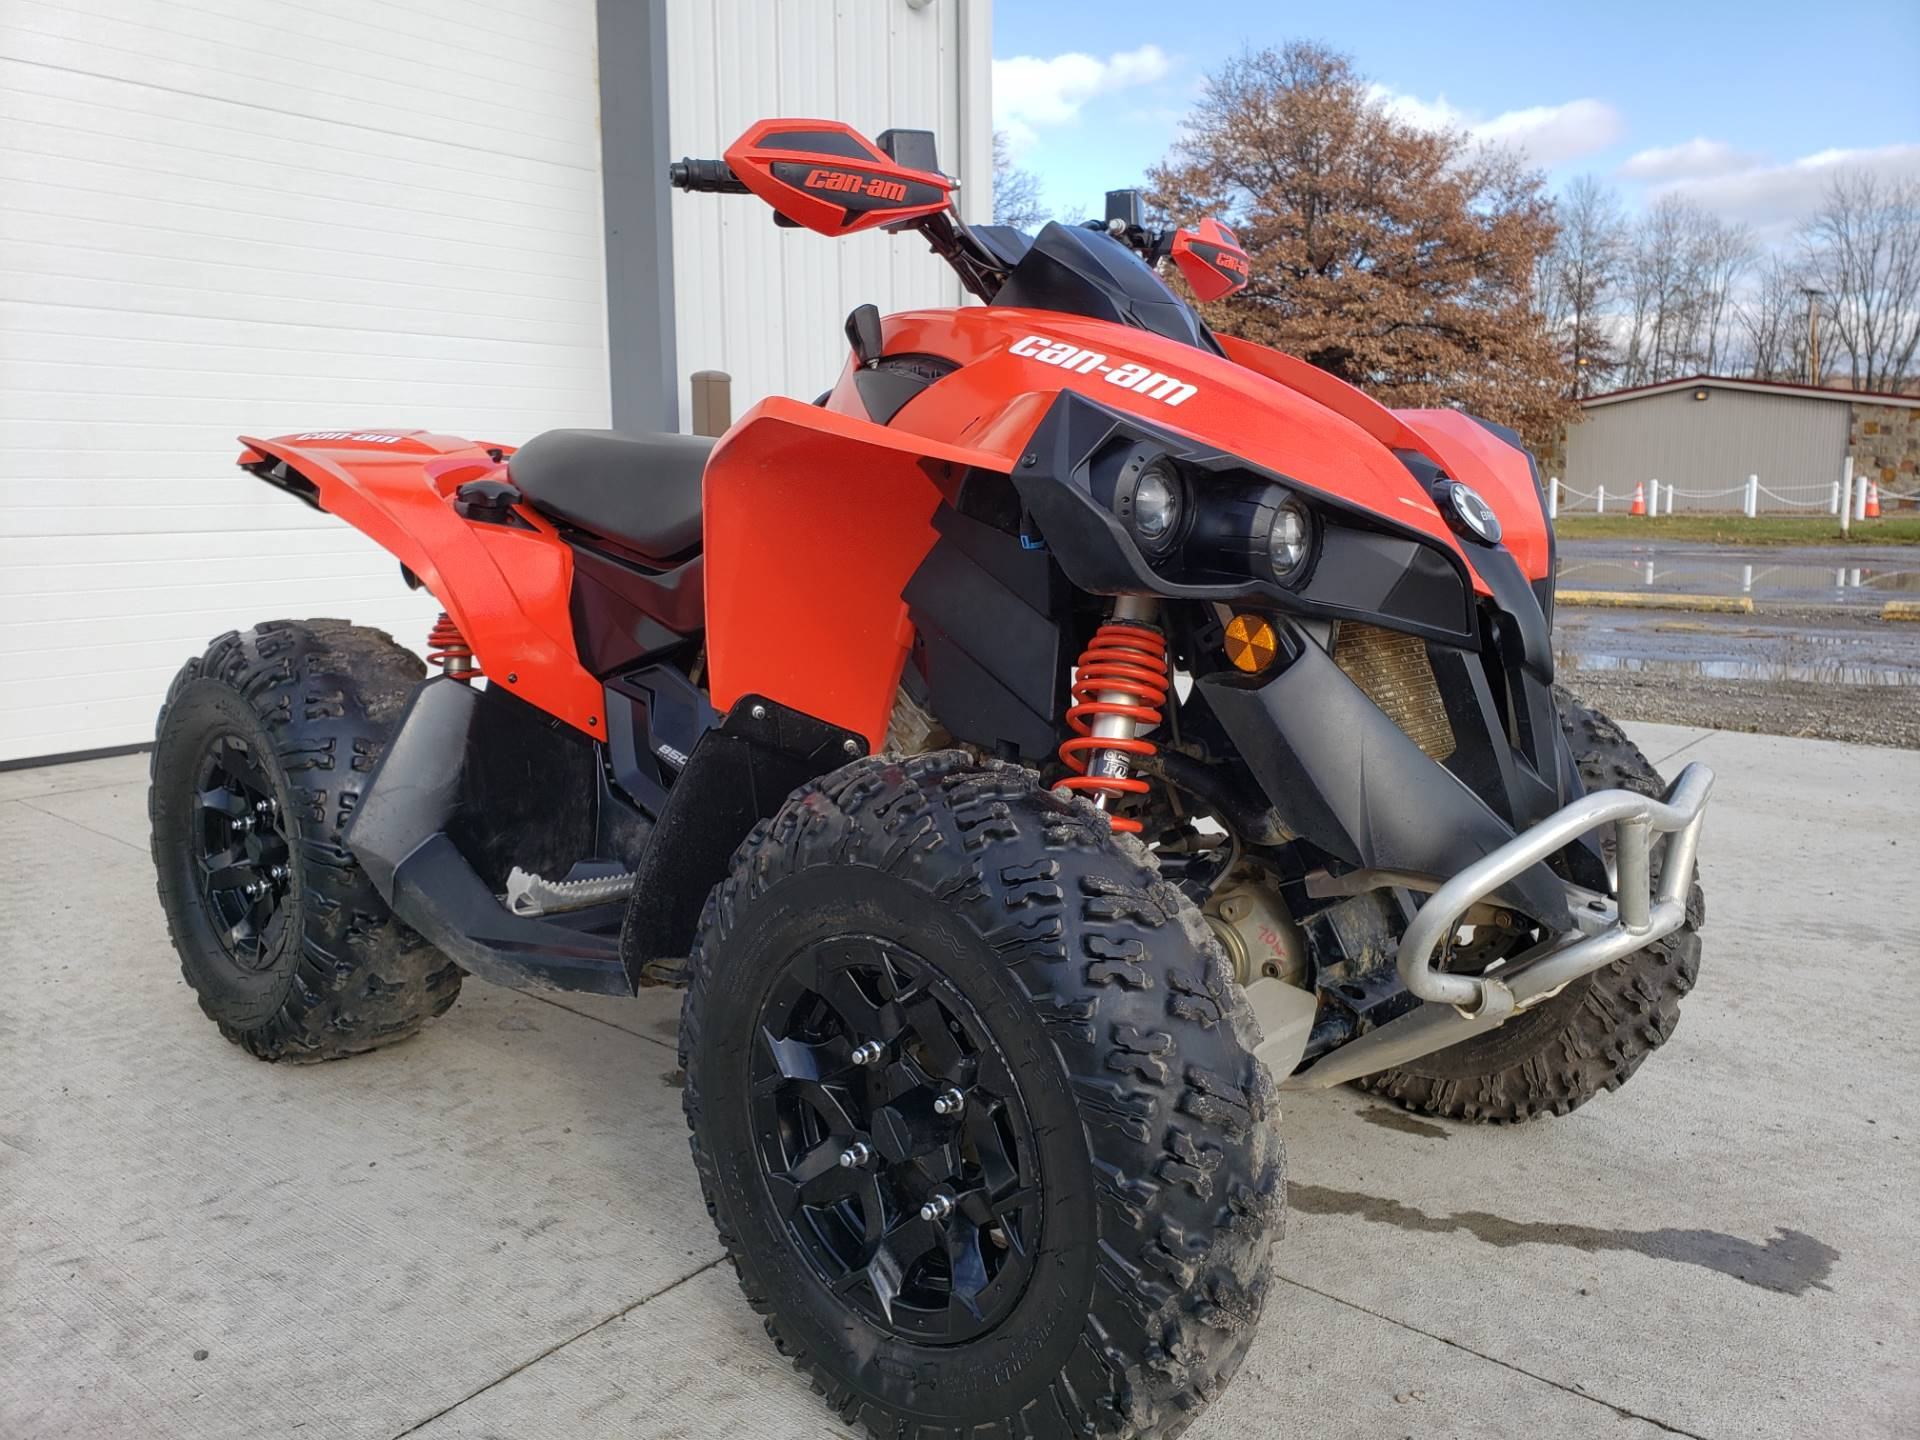 2017 Can-Am Renegade 850 in Cambridge, Ohio - Photo 4